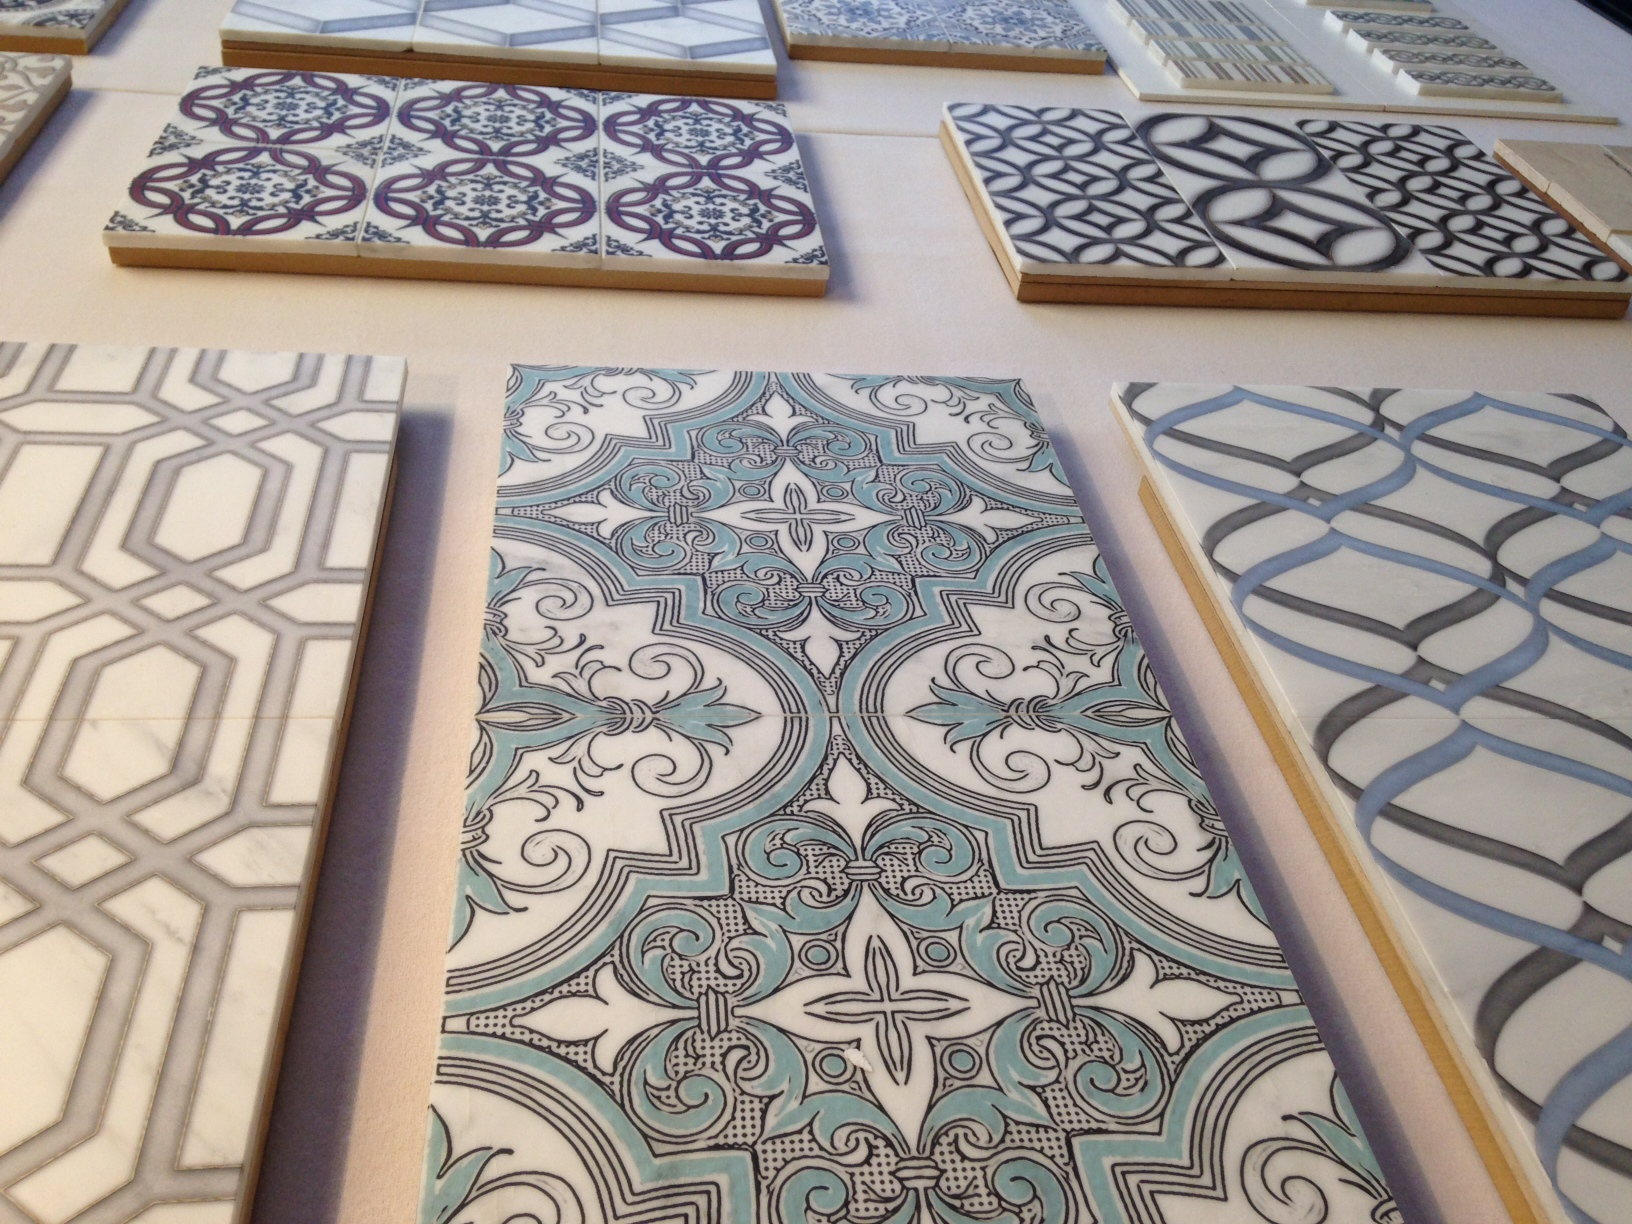 Come check out our new line of hand printed tile on Natural Stone. Available in a variety of colors, patterns and stones.